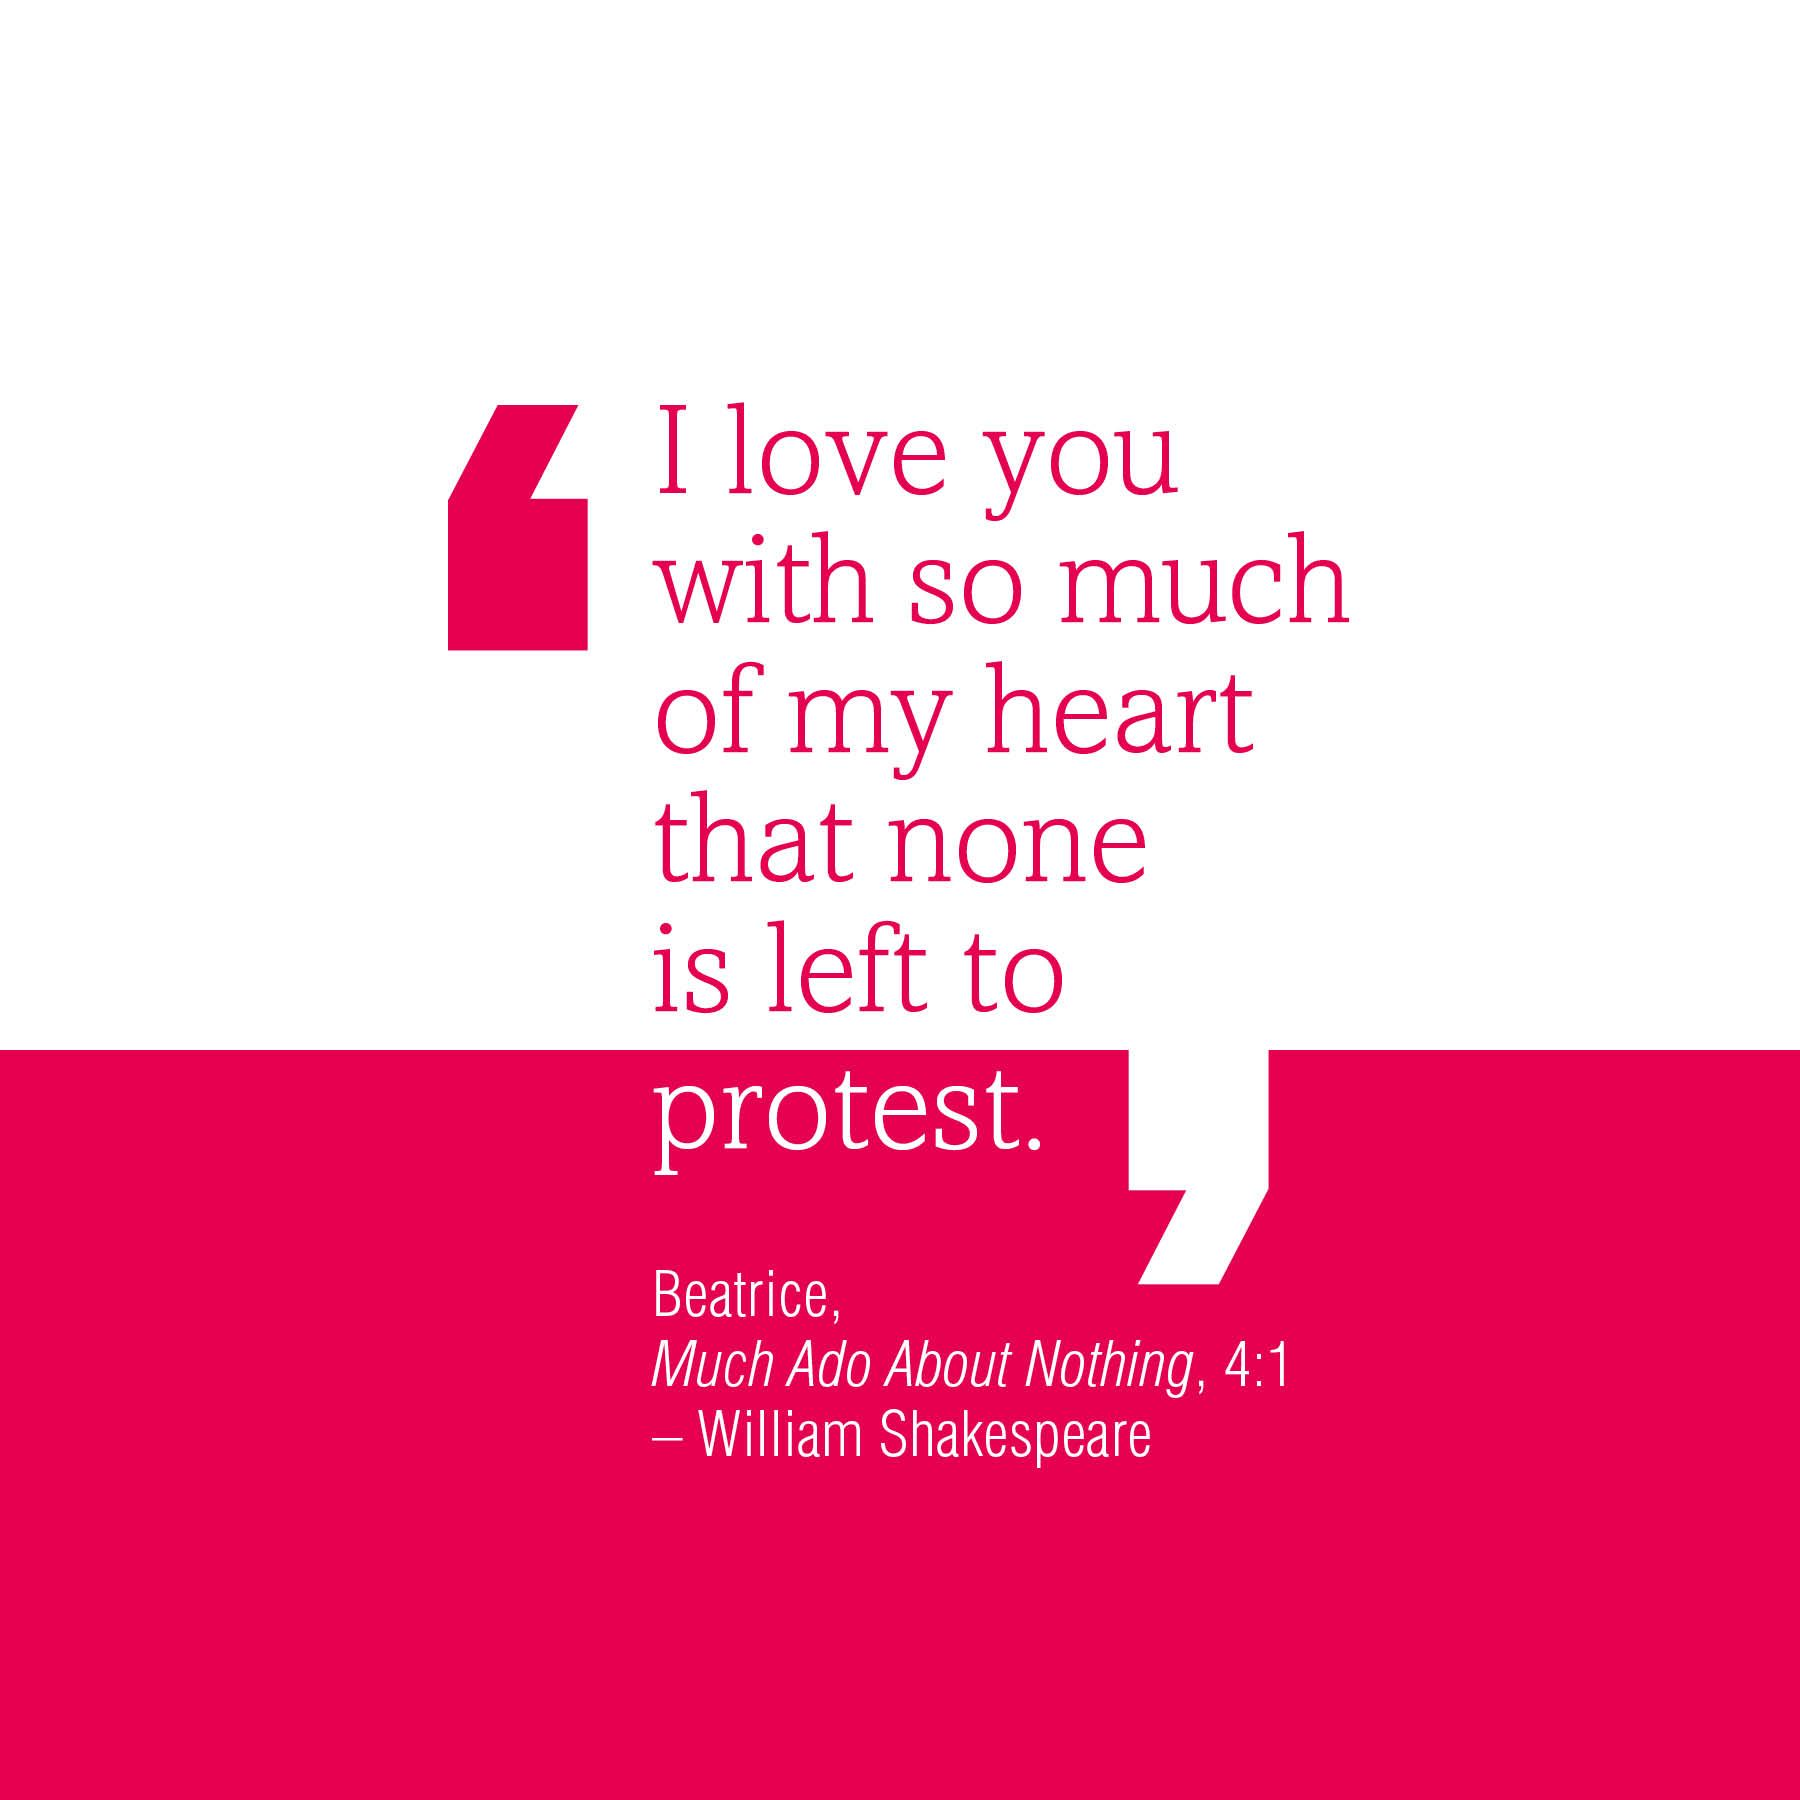 A Shakespeare Quote For Valentine S Day From Much Ado About Nothing